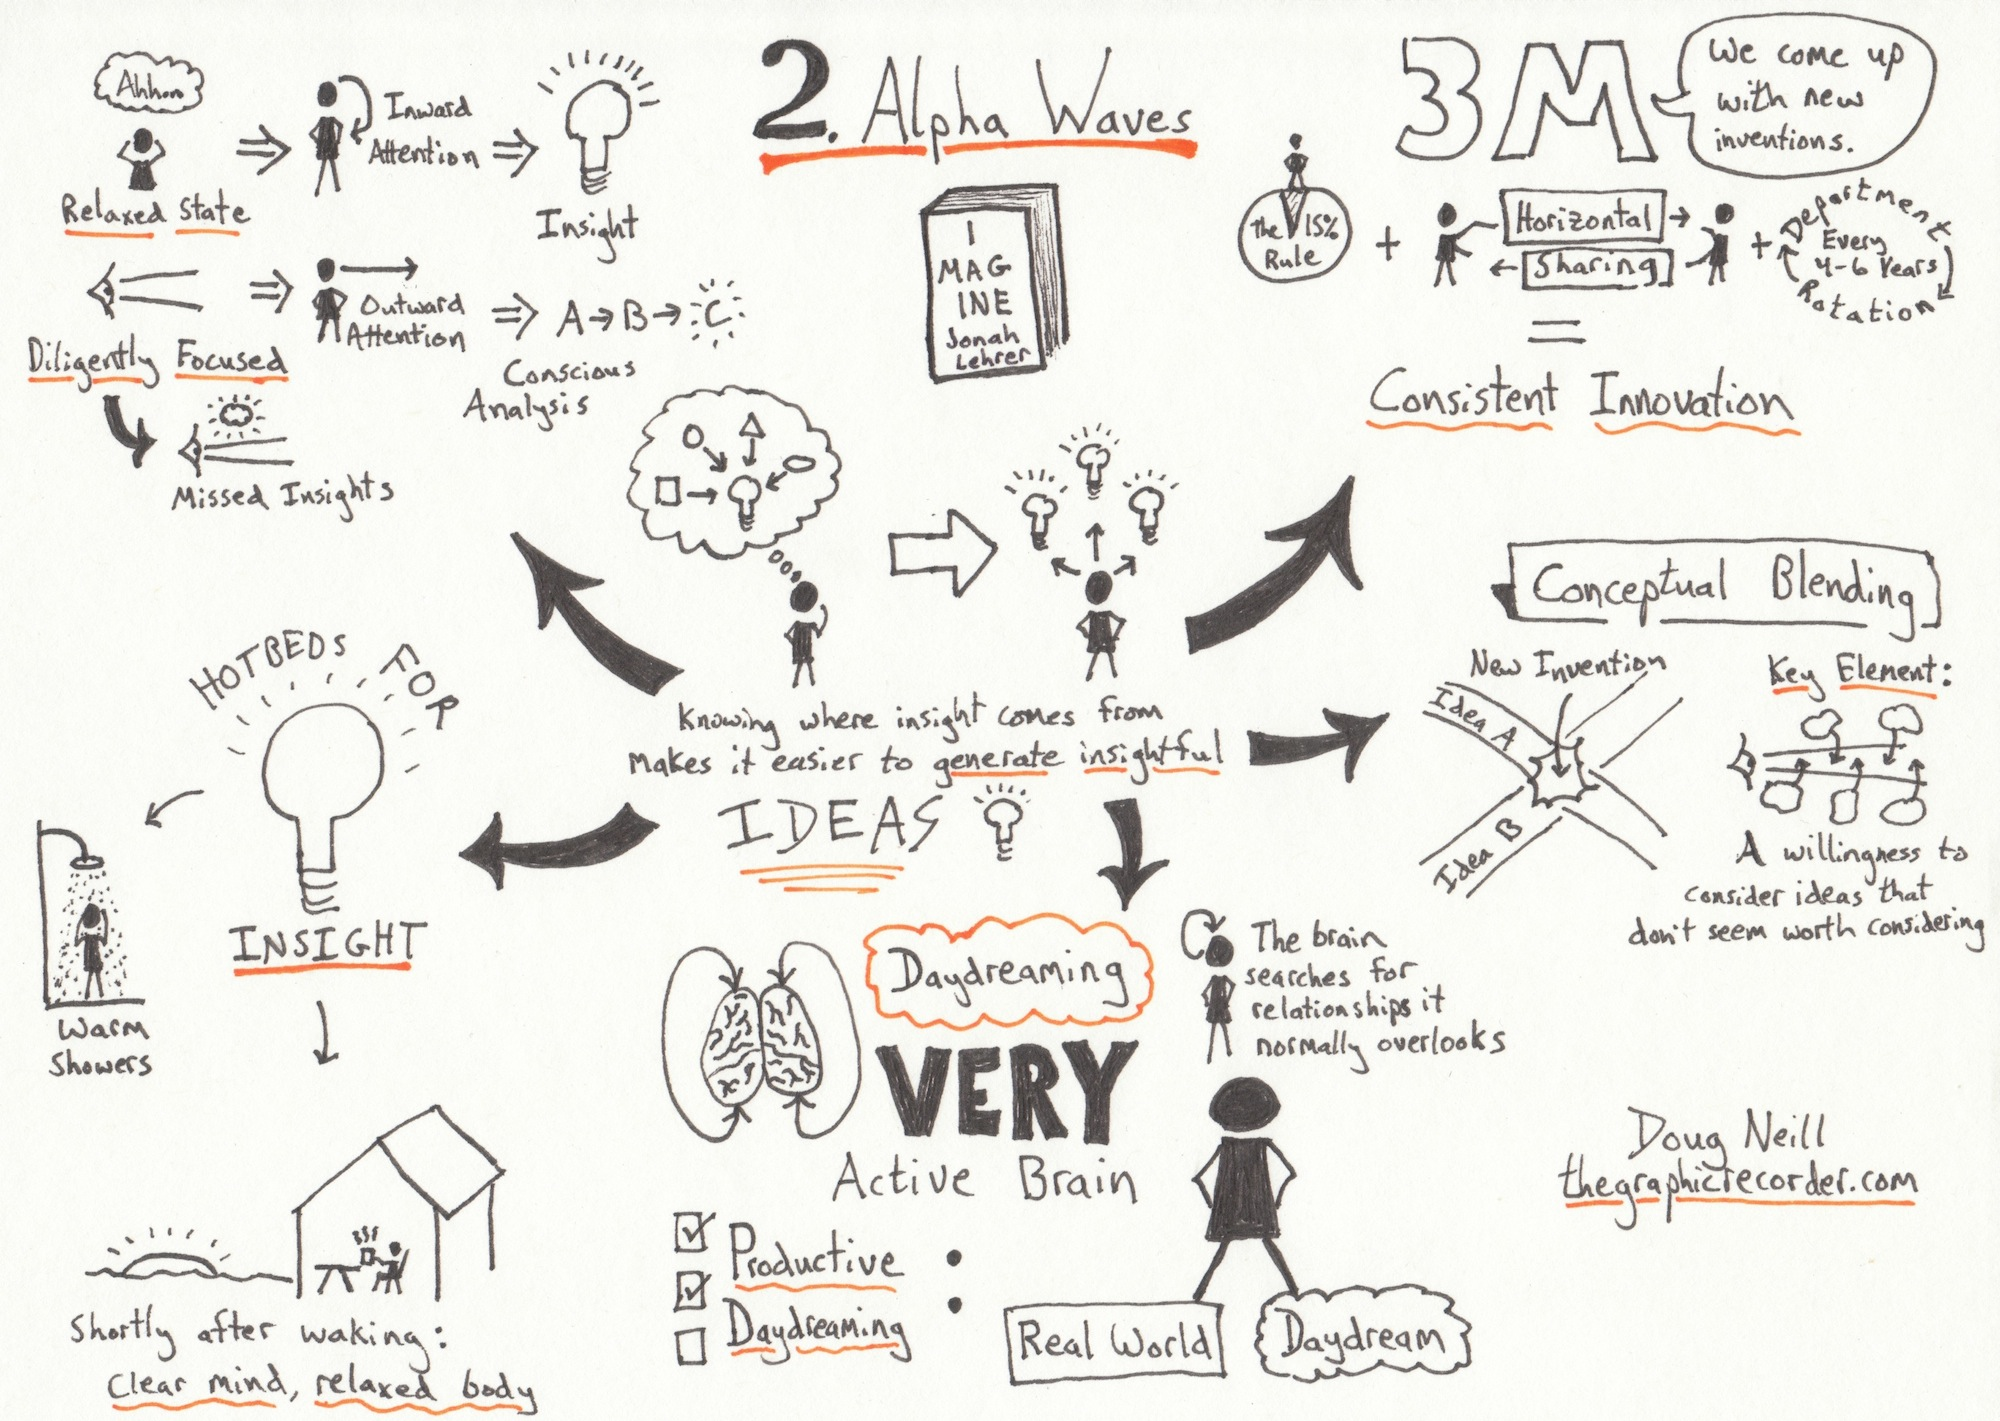 The Graphic Recorder - Doug Neill - Jonah Lehrer on Alpha Waves - Sketch Notes from the 2nd Chapter of Imagine